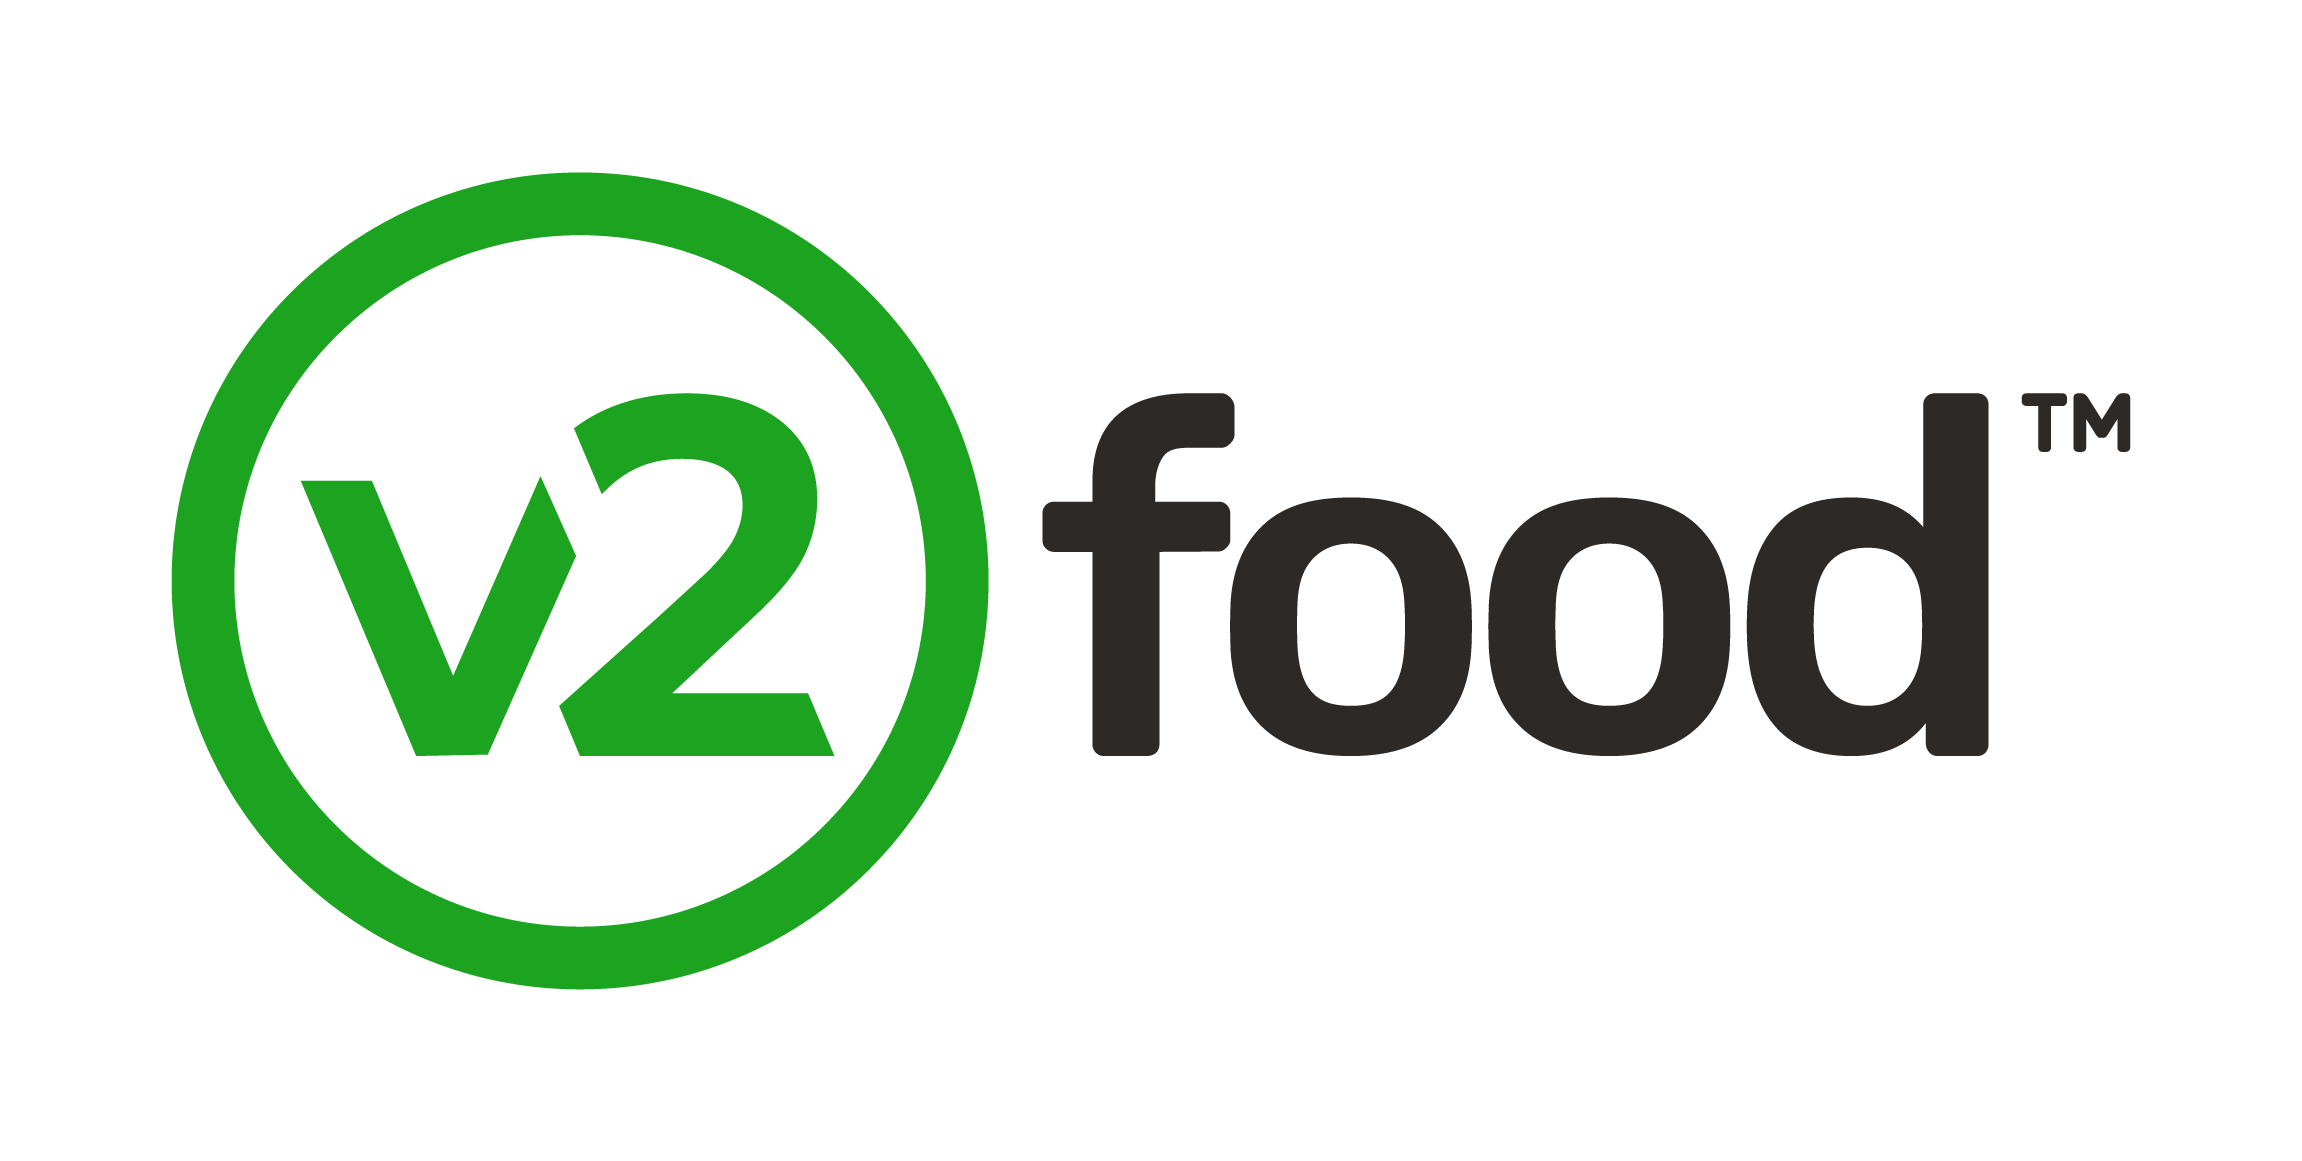 Plant Based Meat Startup V2Foods adds $35 million to the rollout